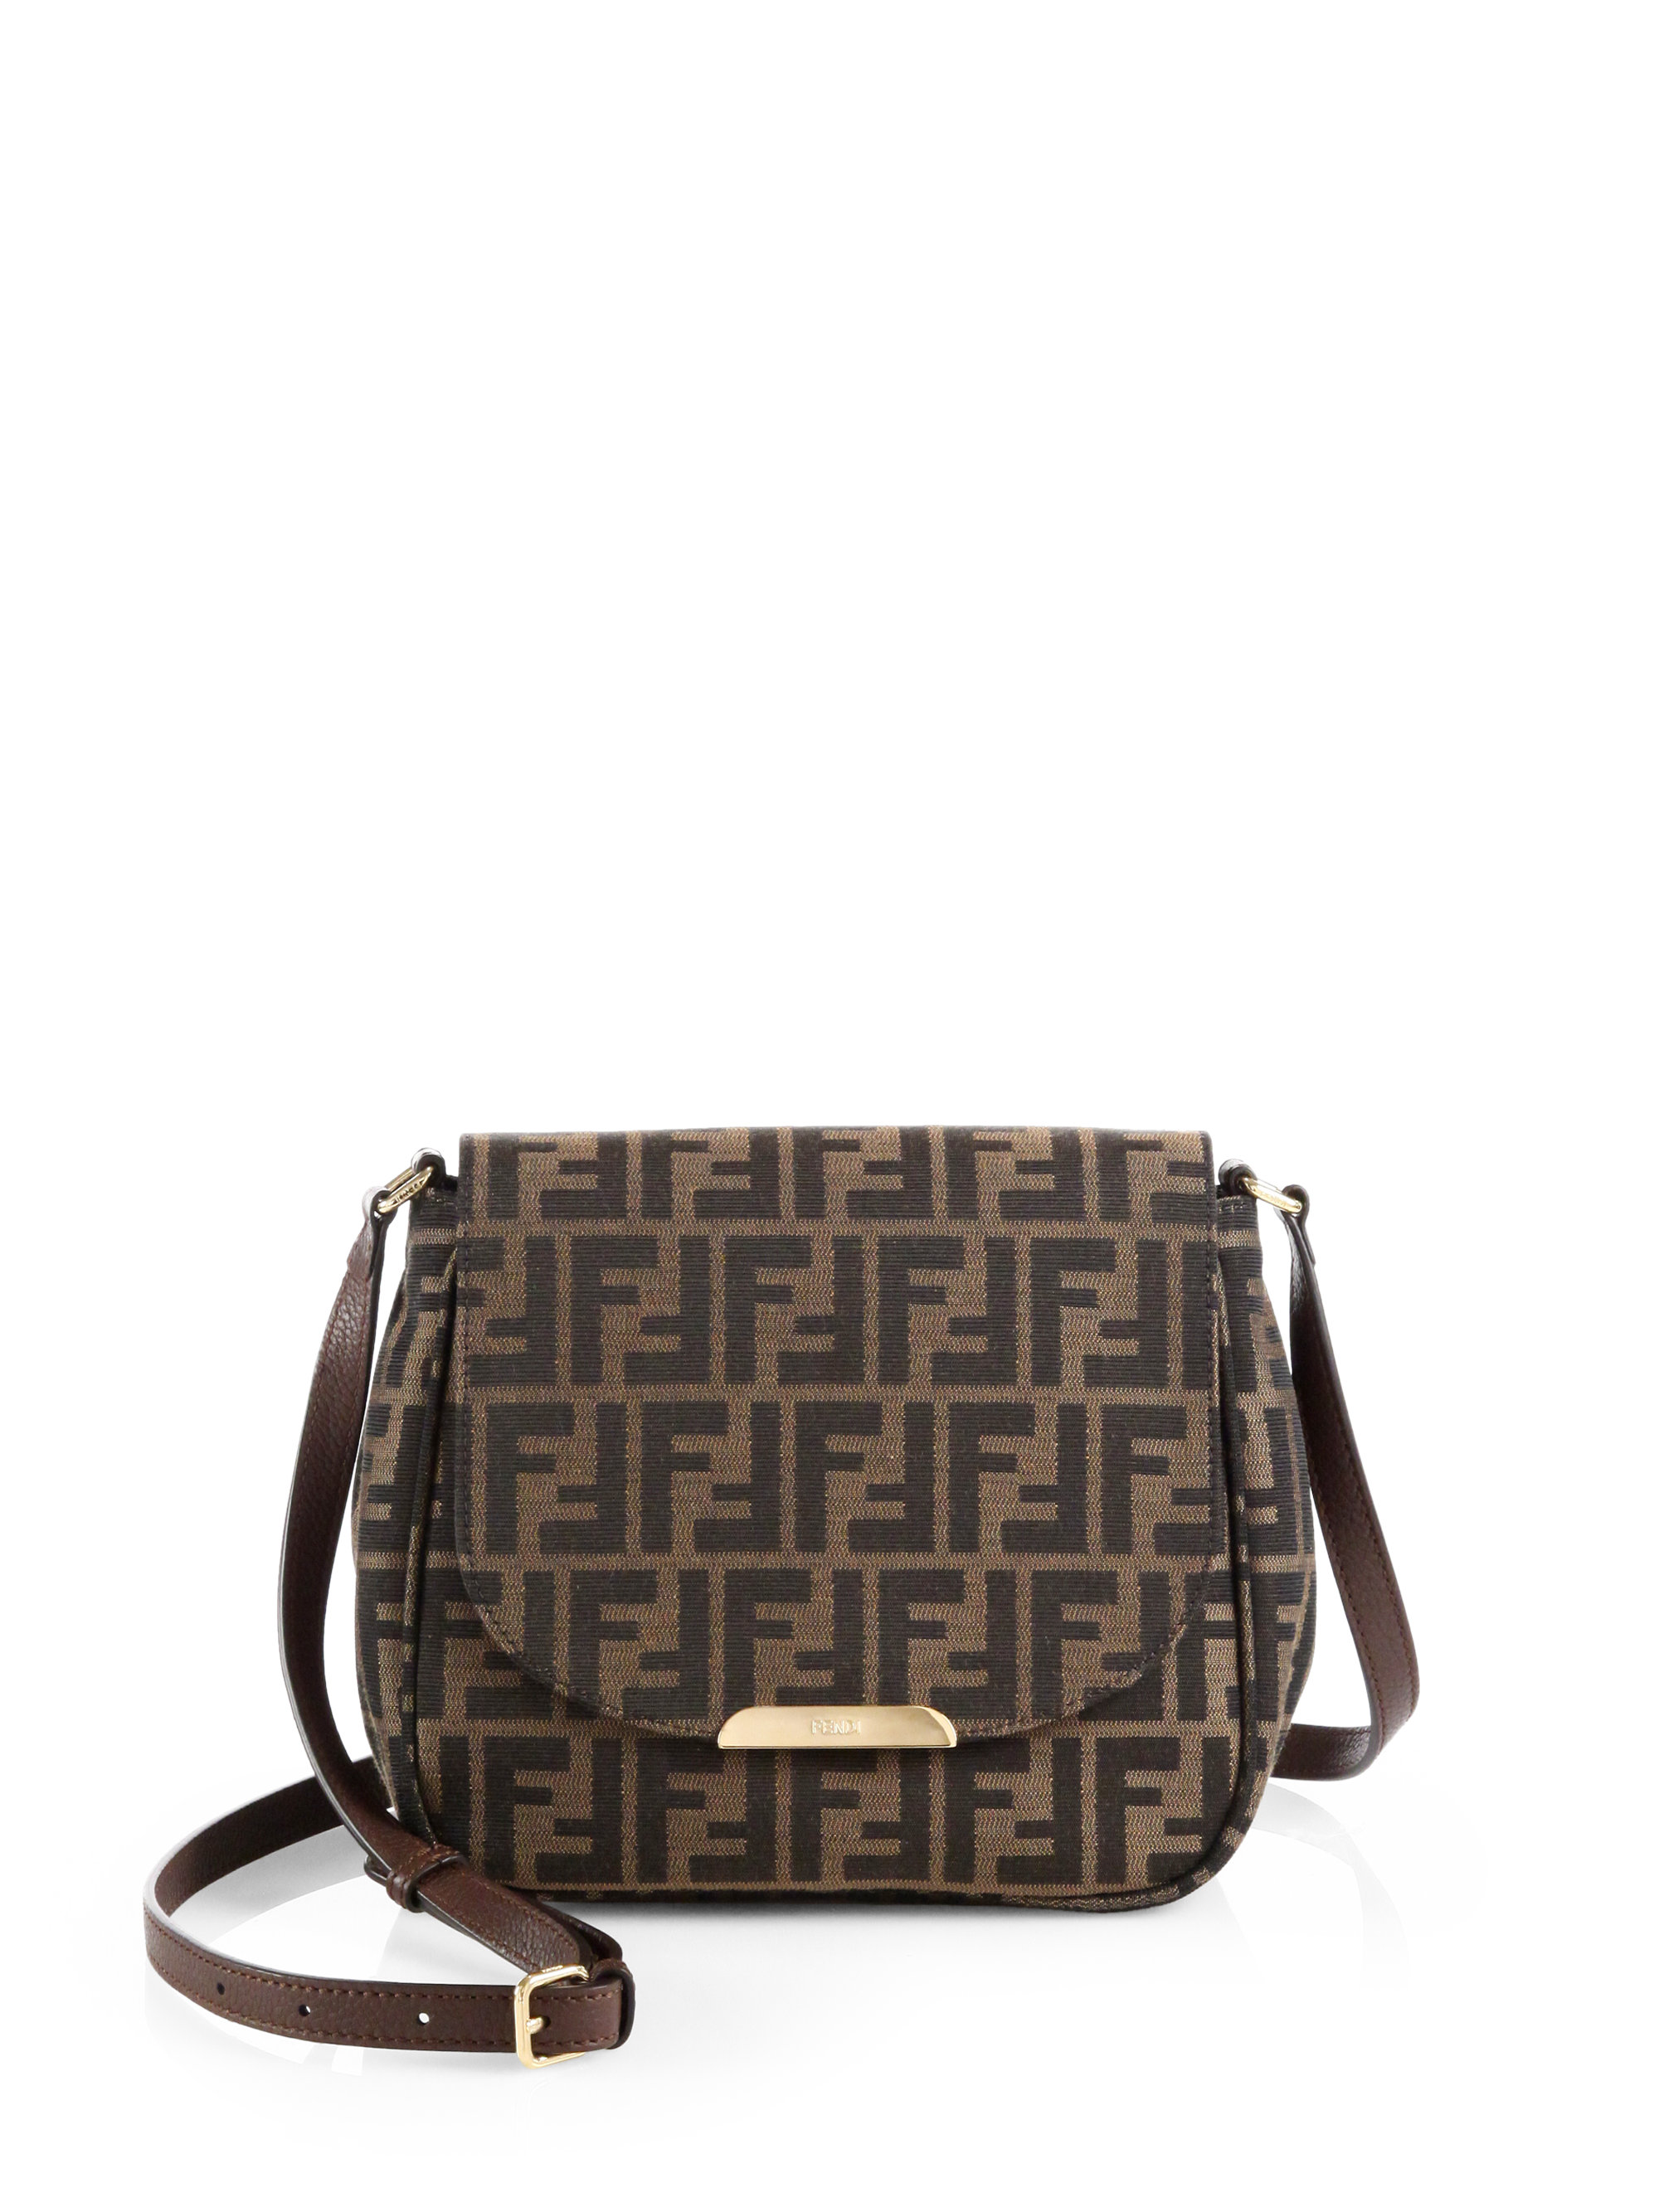 28d1c6503f44 ... cheap charitybuzz fendi zucca forever shoulder bag in brown lot 1427704  ca014 ff3c9 ...